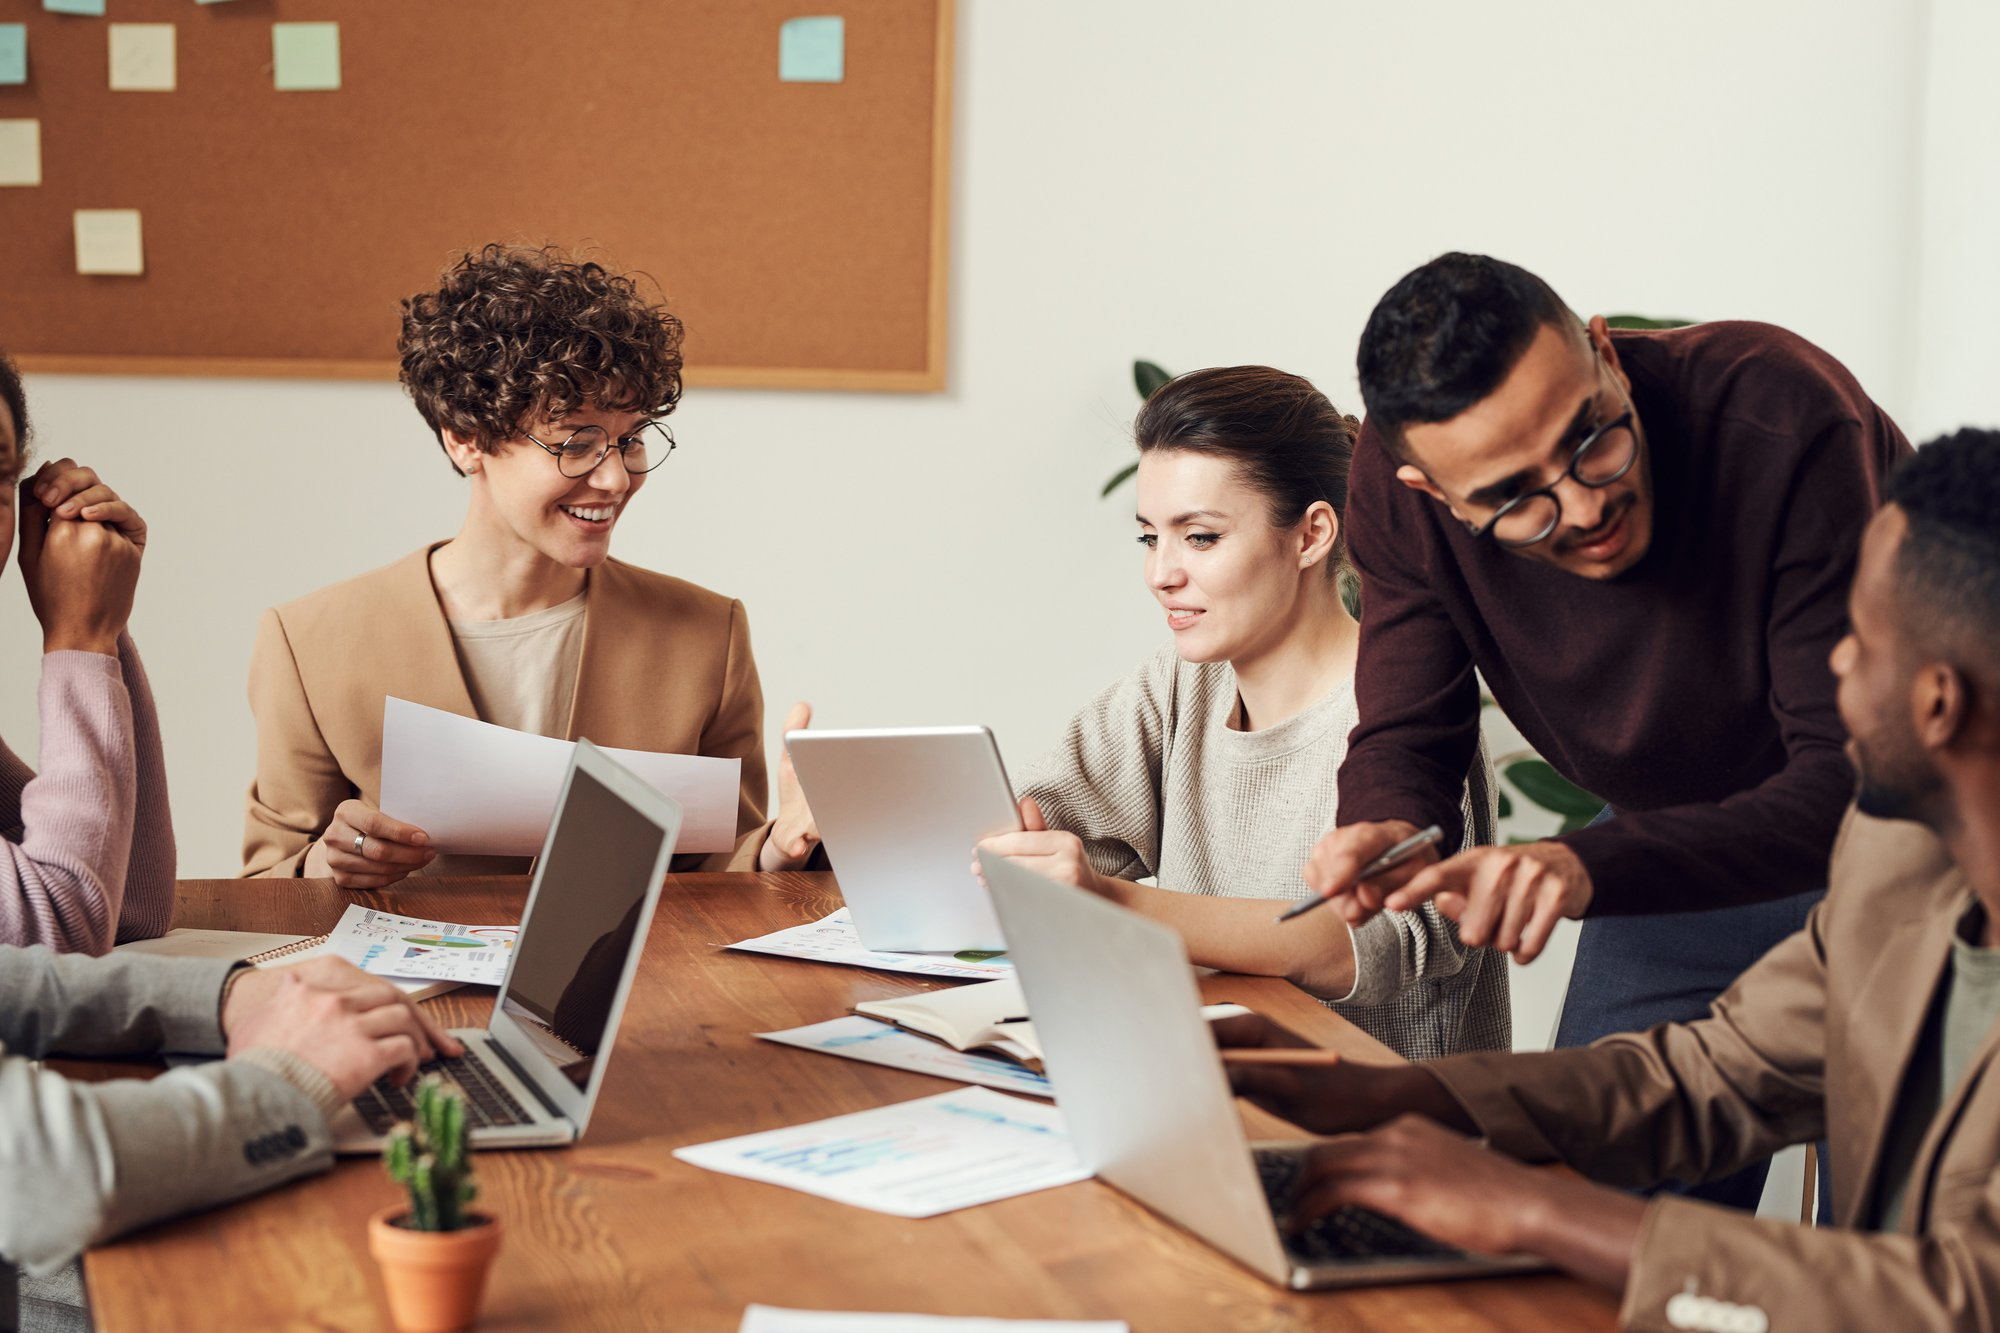 How to Know if an Employee is a Good Fit